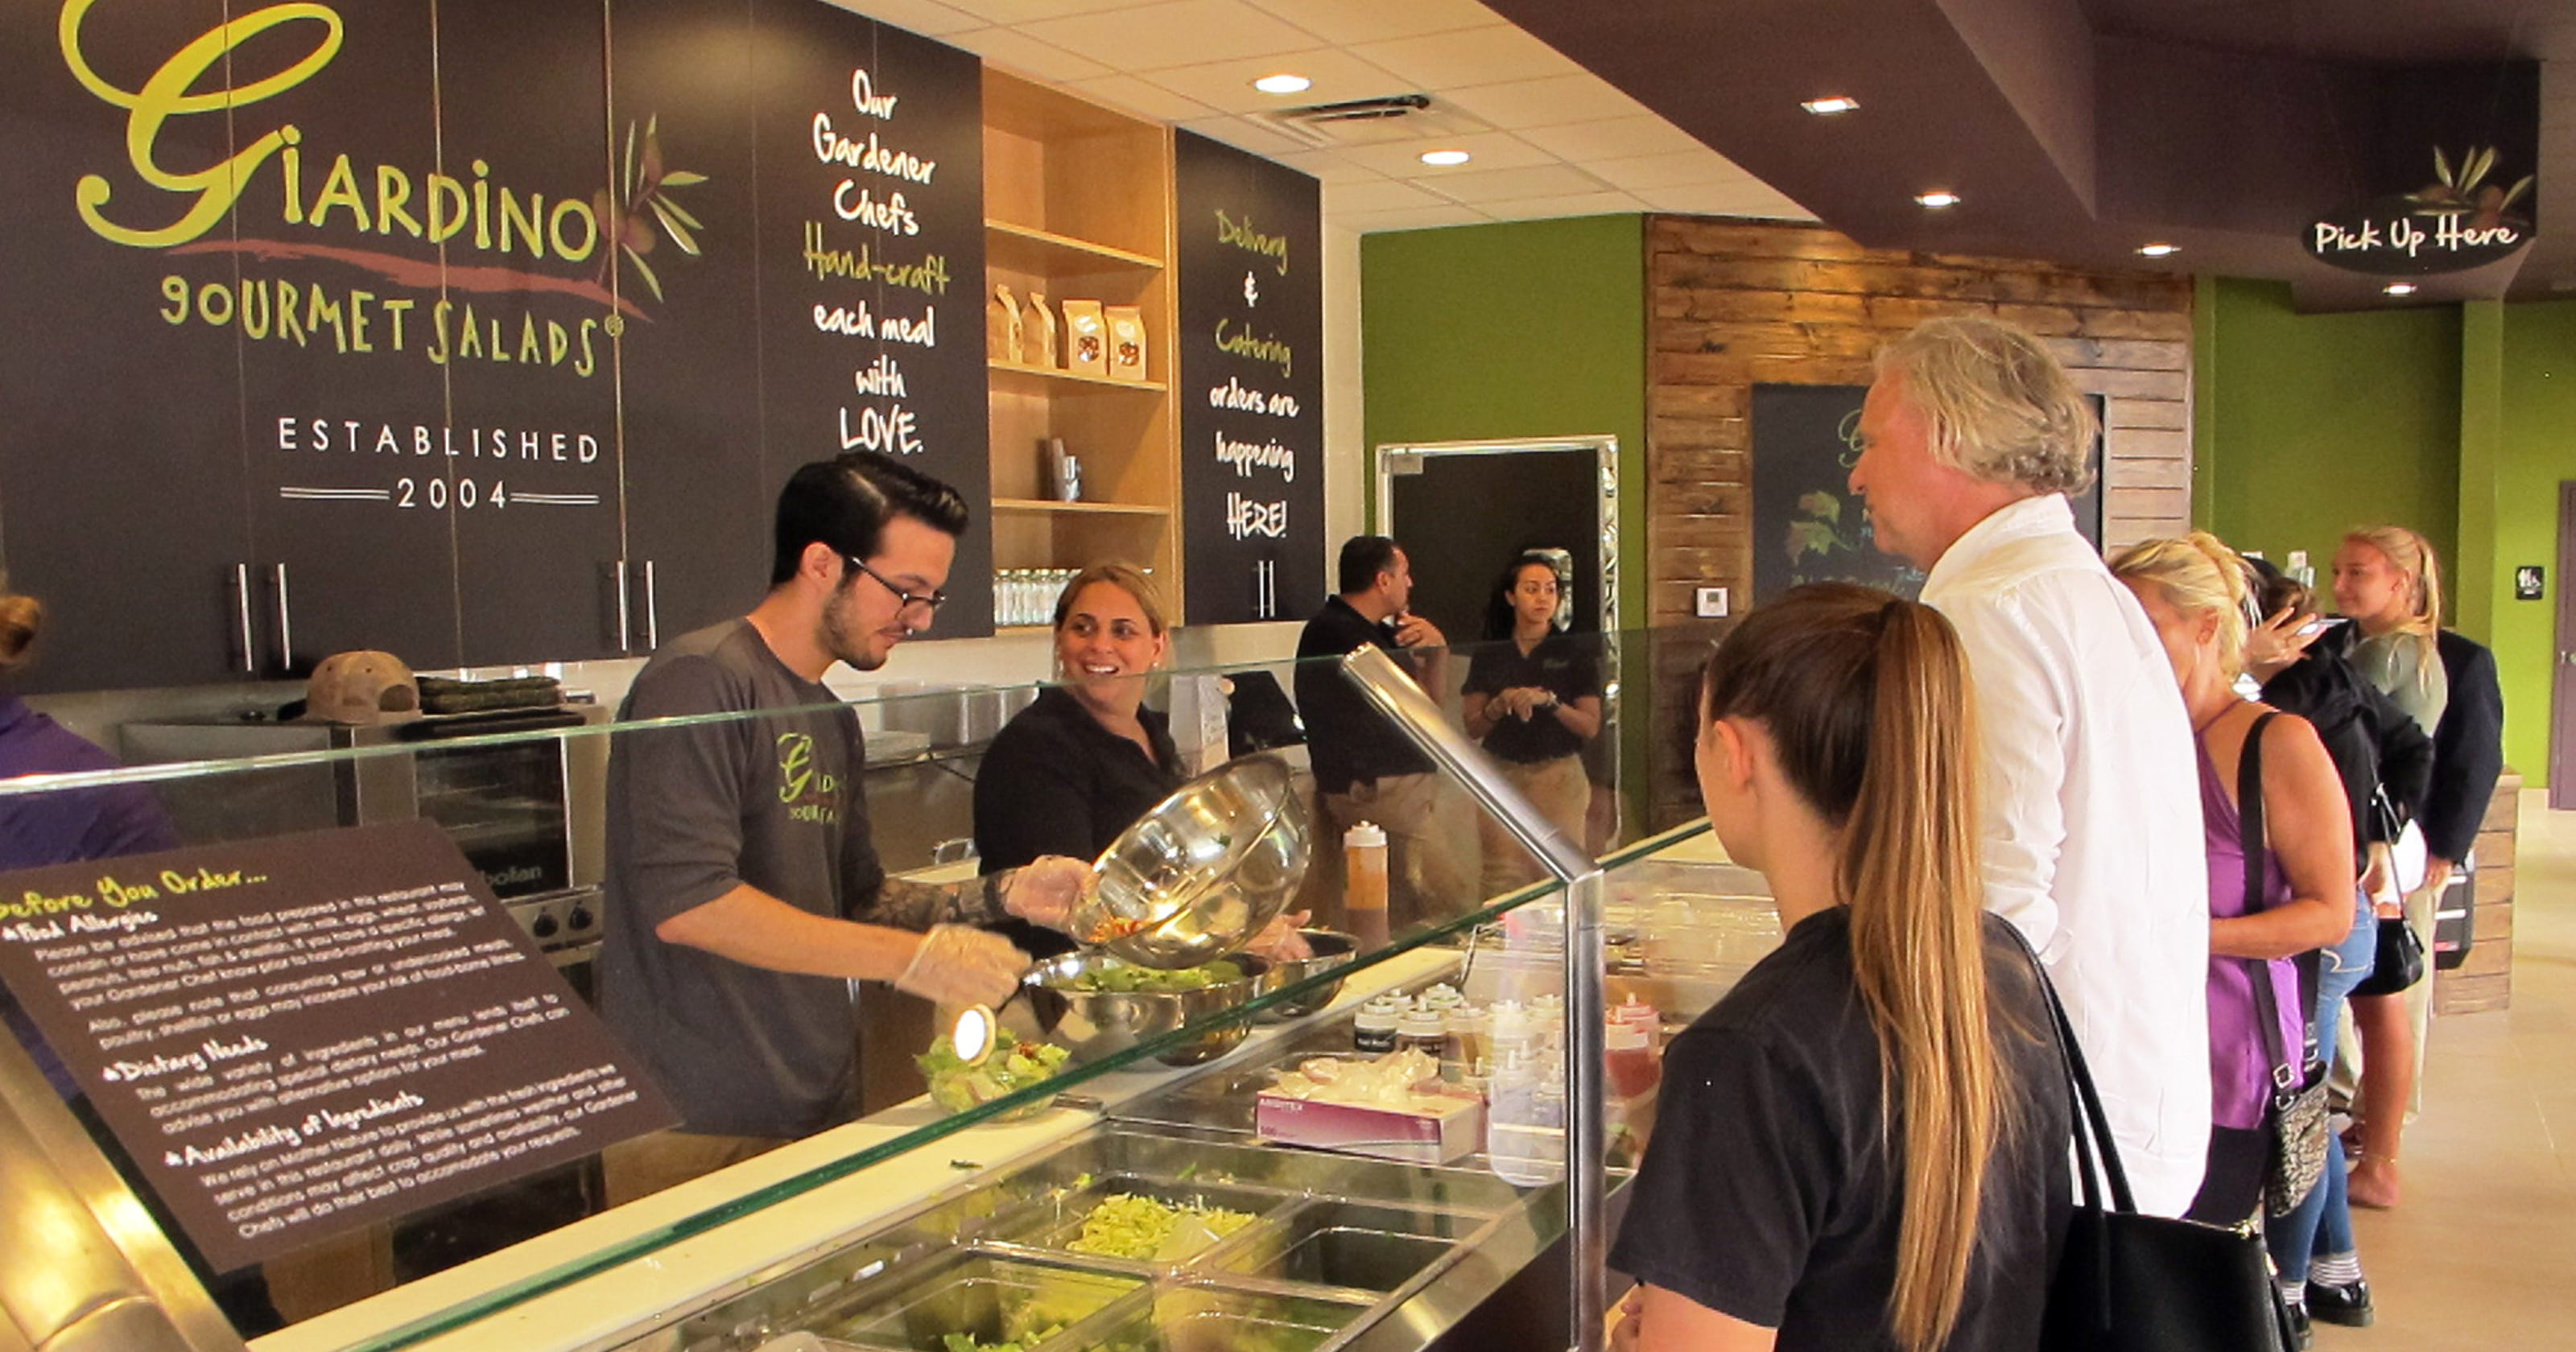 In the Know: Giardino Gourmet Salads launches Naples restaurant